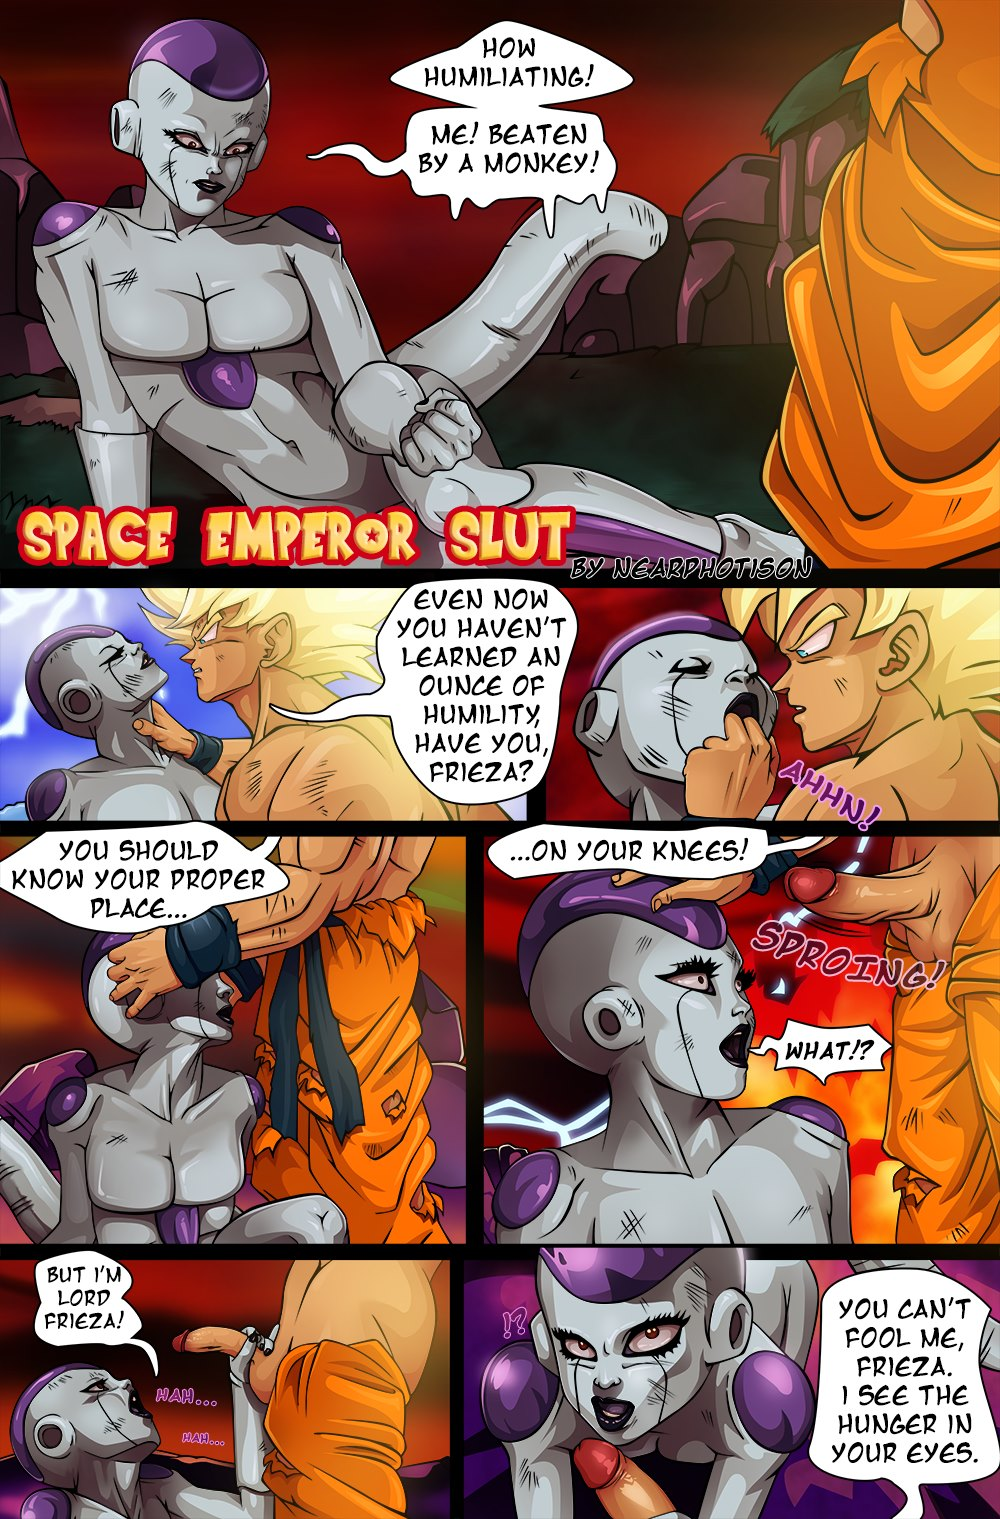 DBZ – Space Emperor Slut- Nearphotison